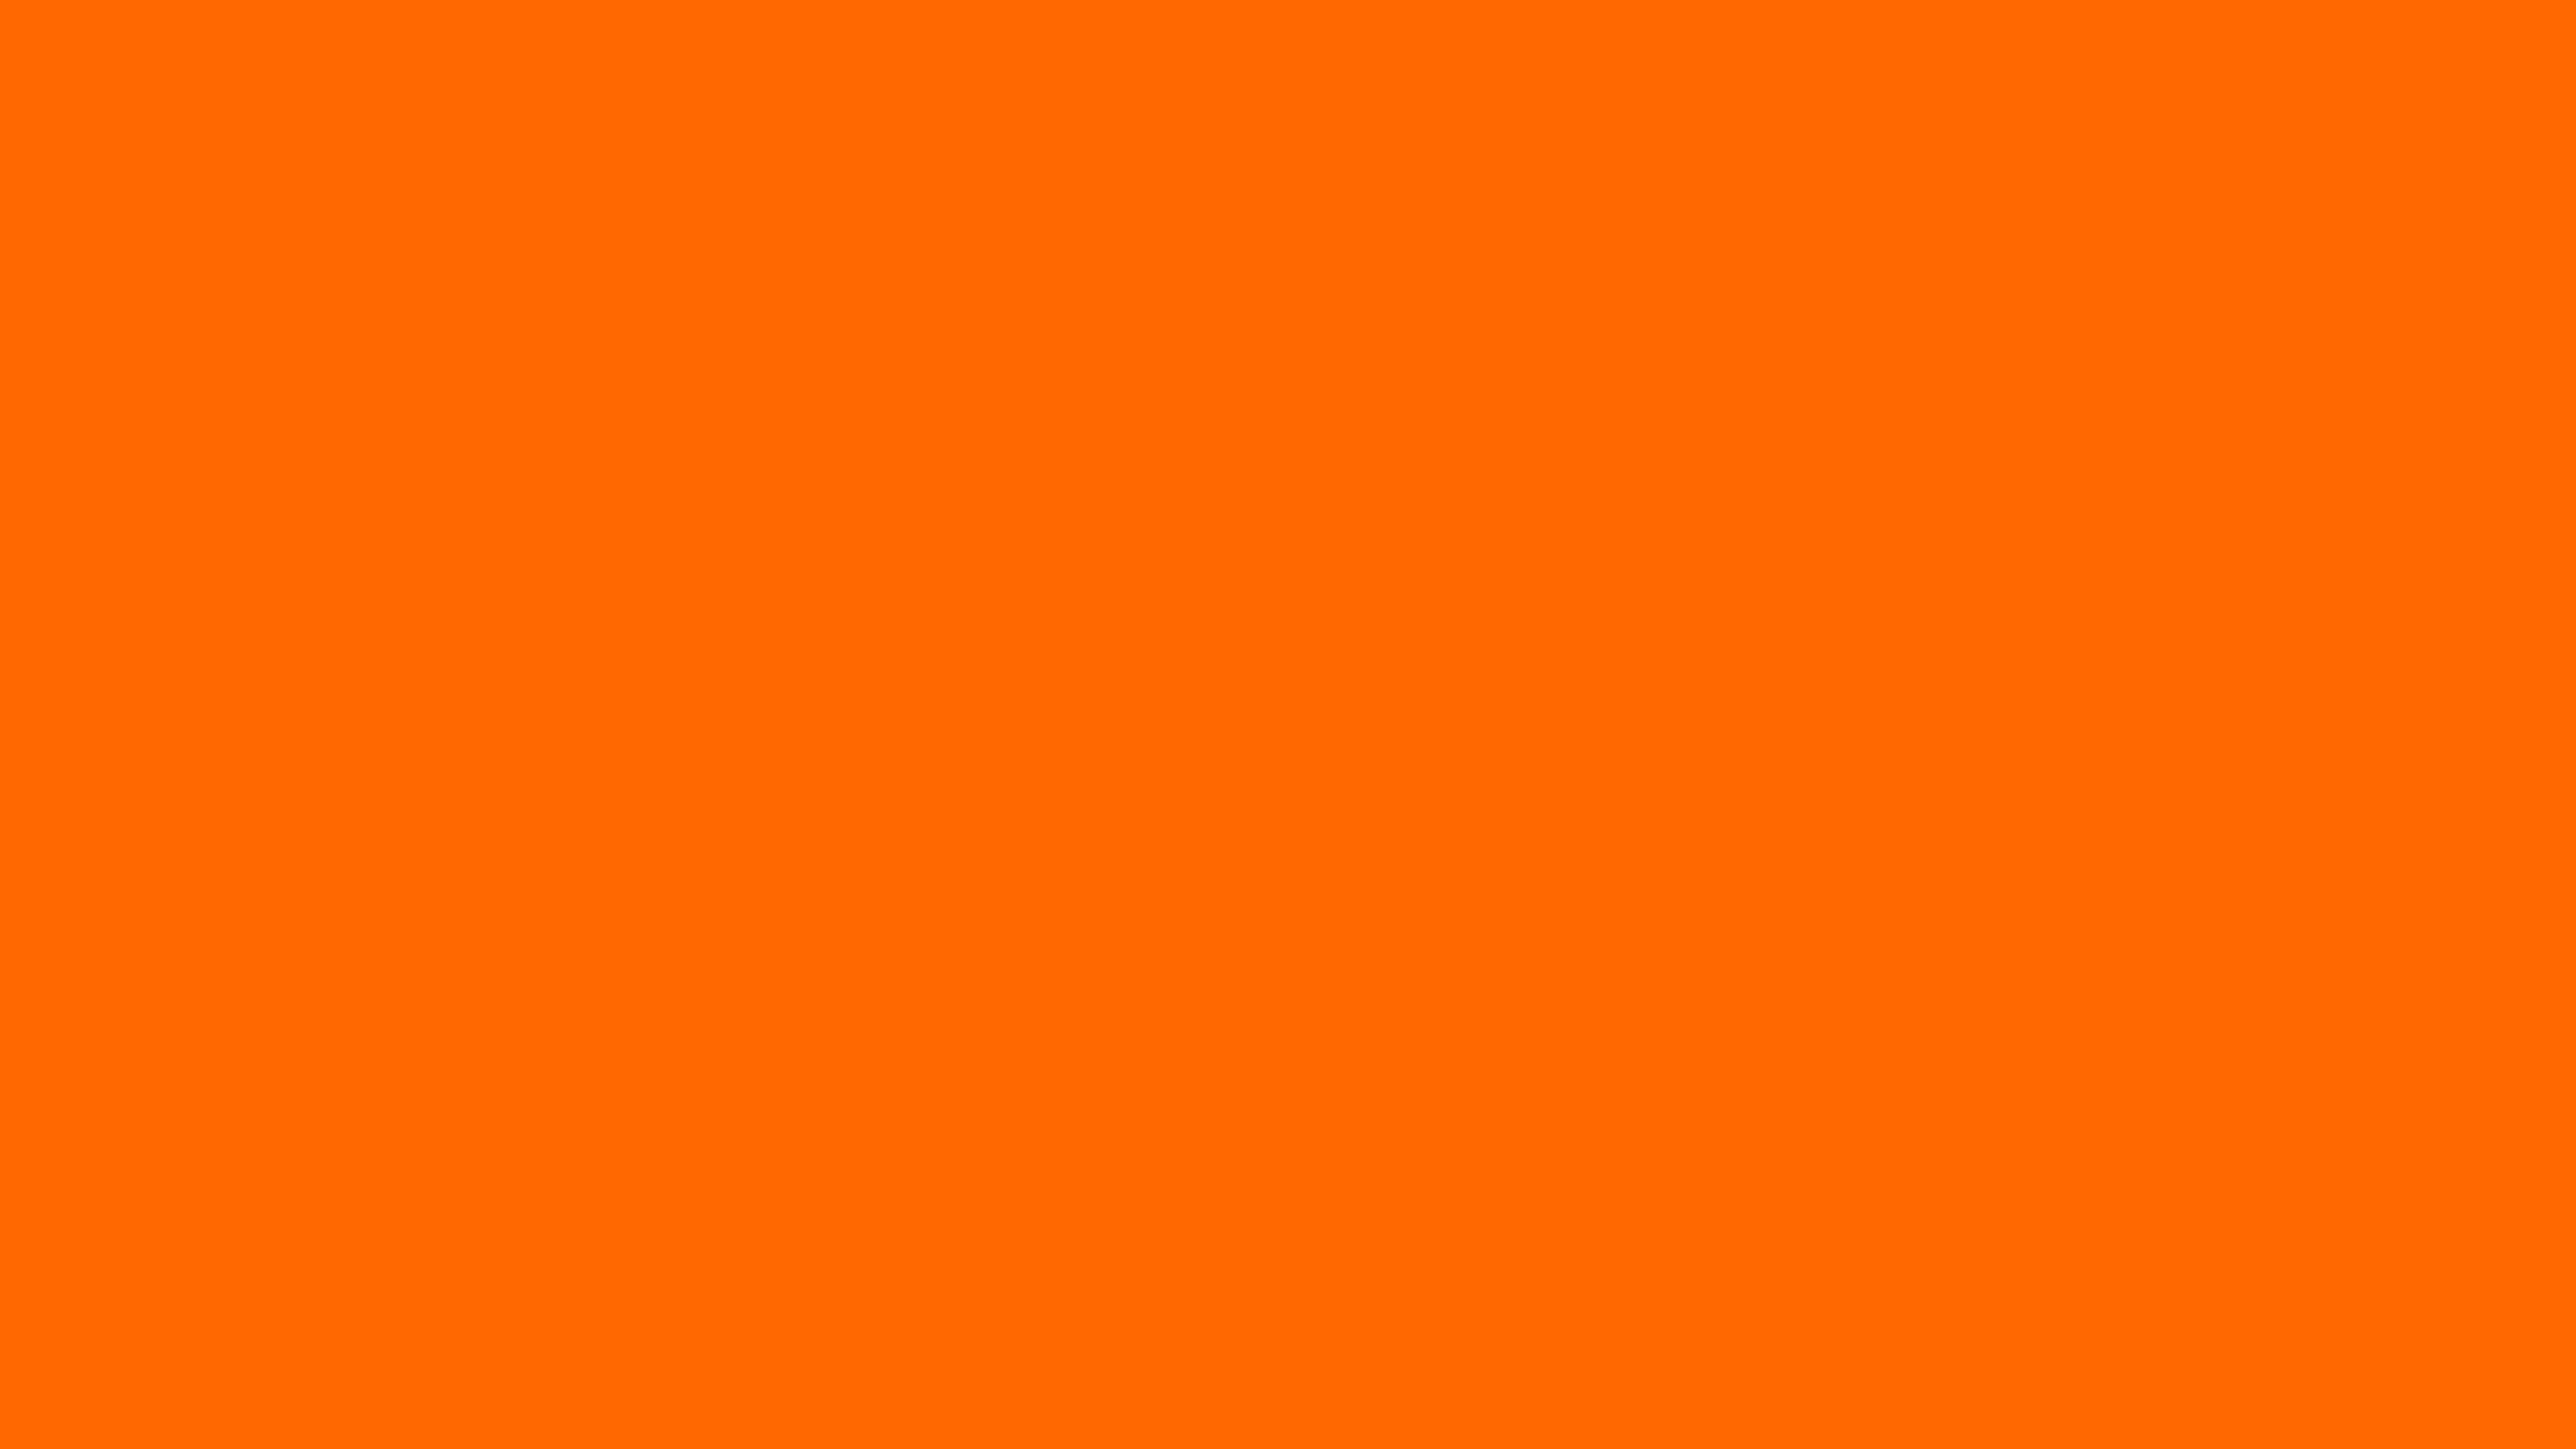 3840x2160 Safety Orange Blaze Orange Solid Color Background